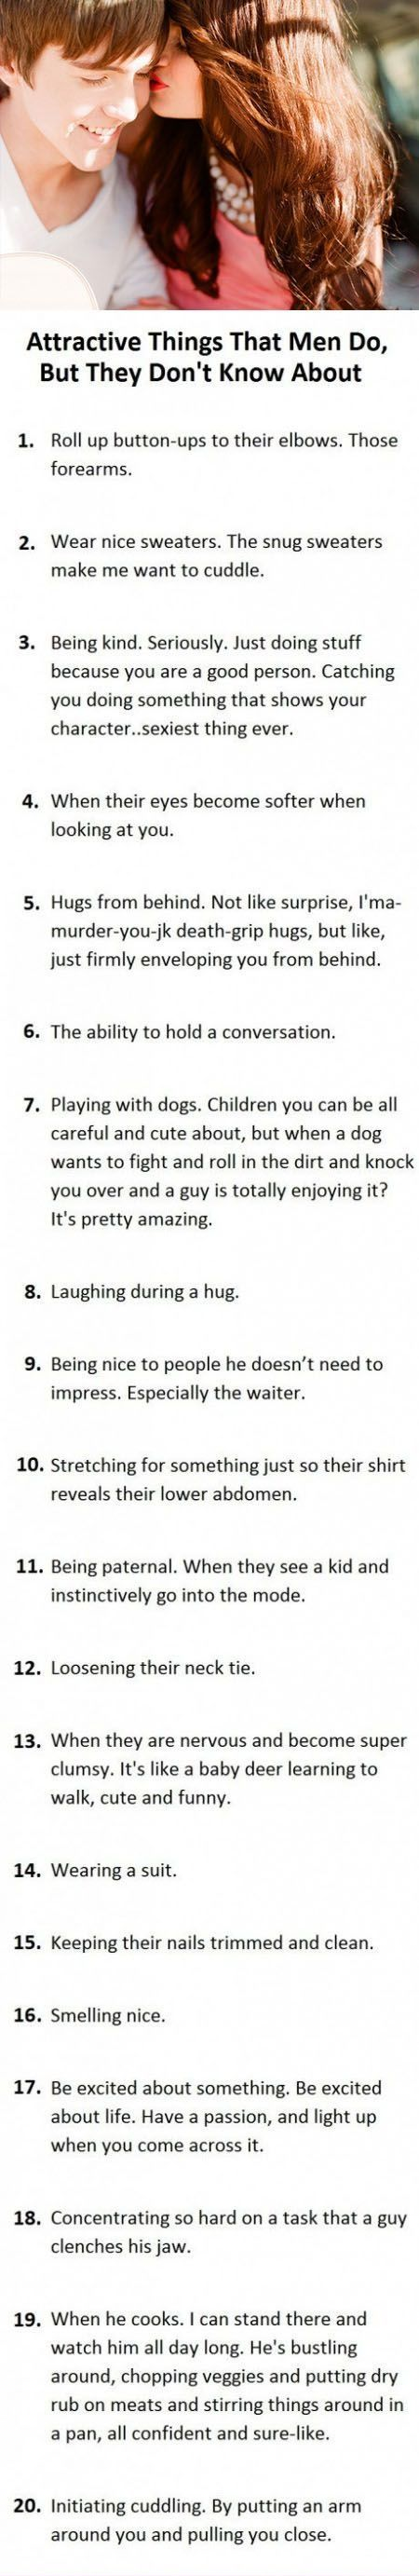 Attractive things that men do,but they don`t know about it.